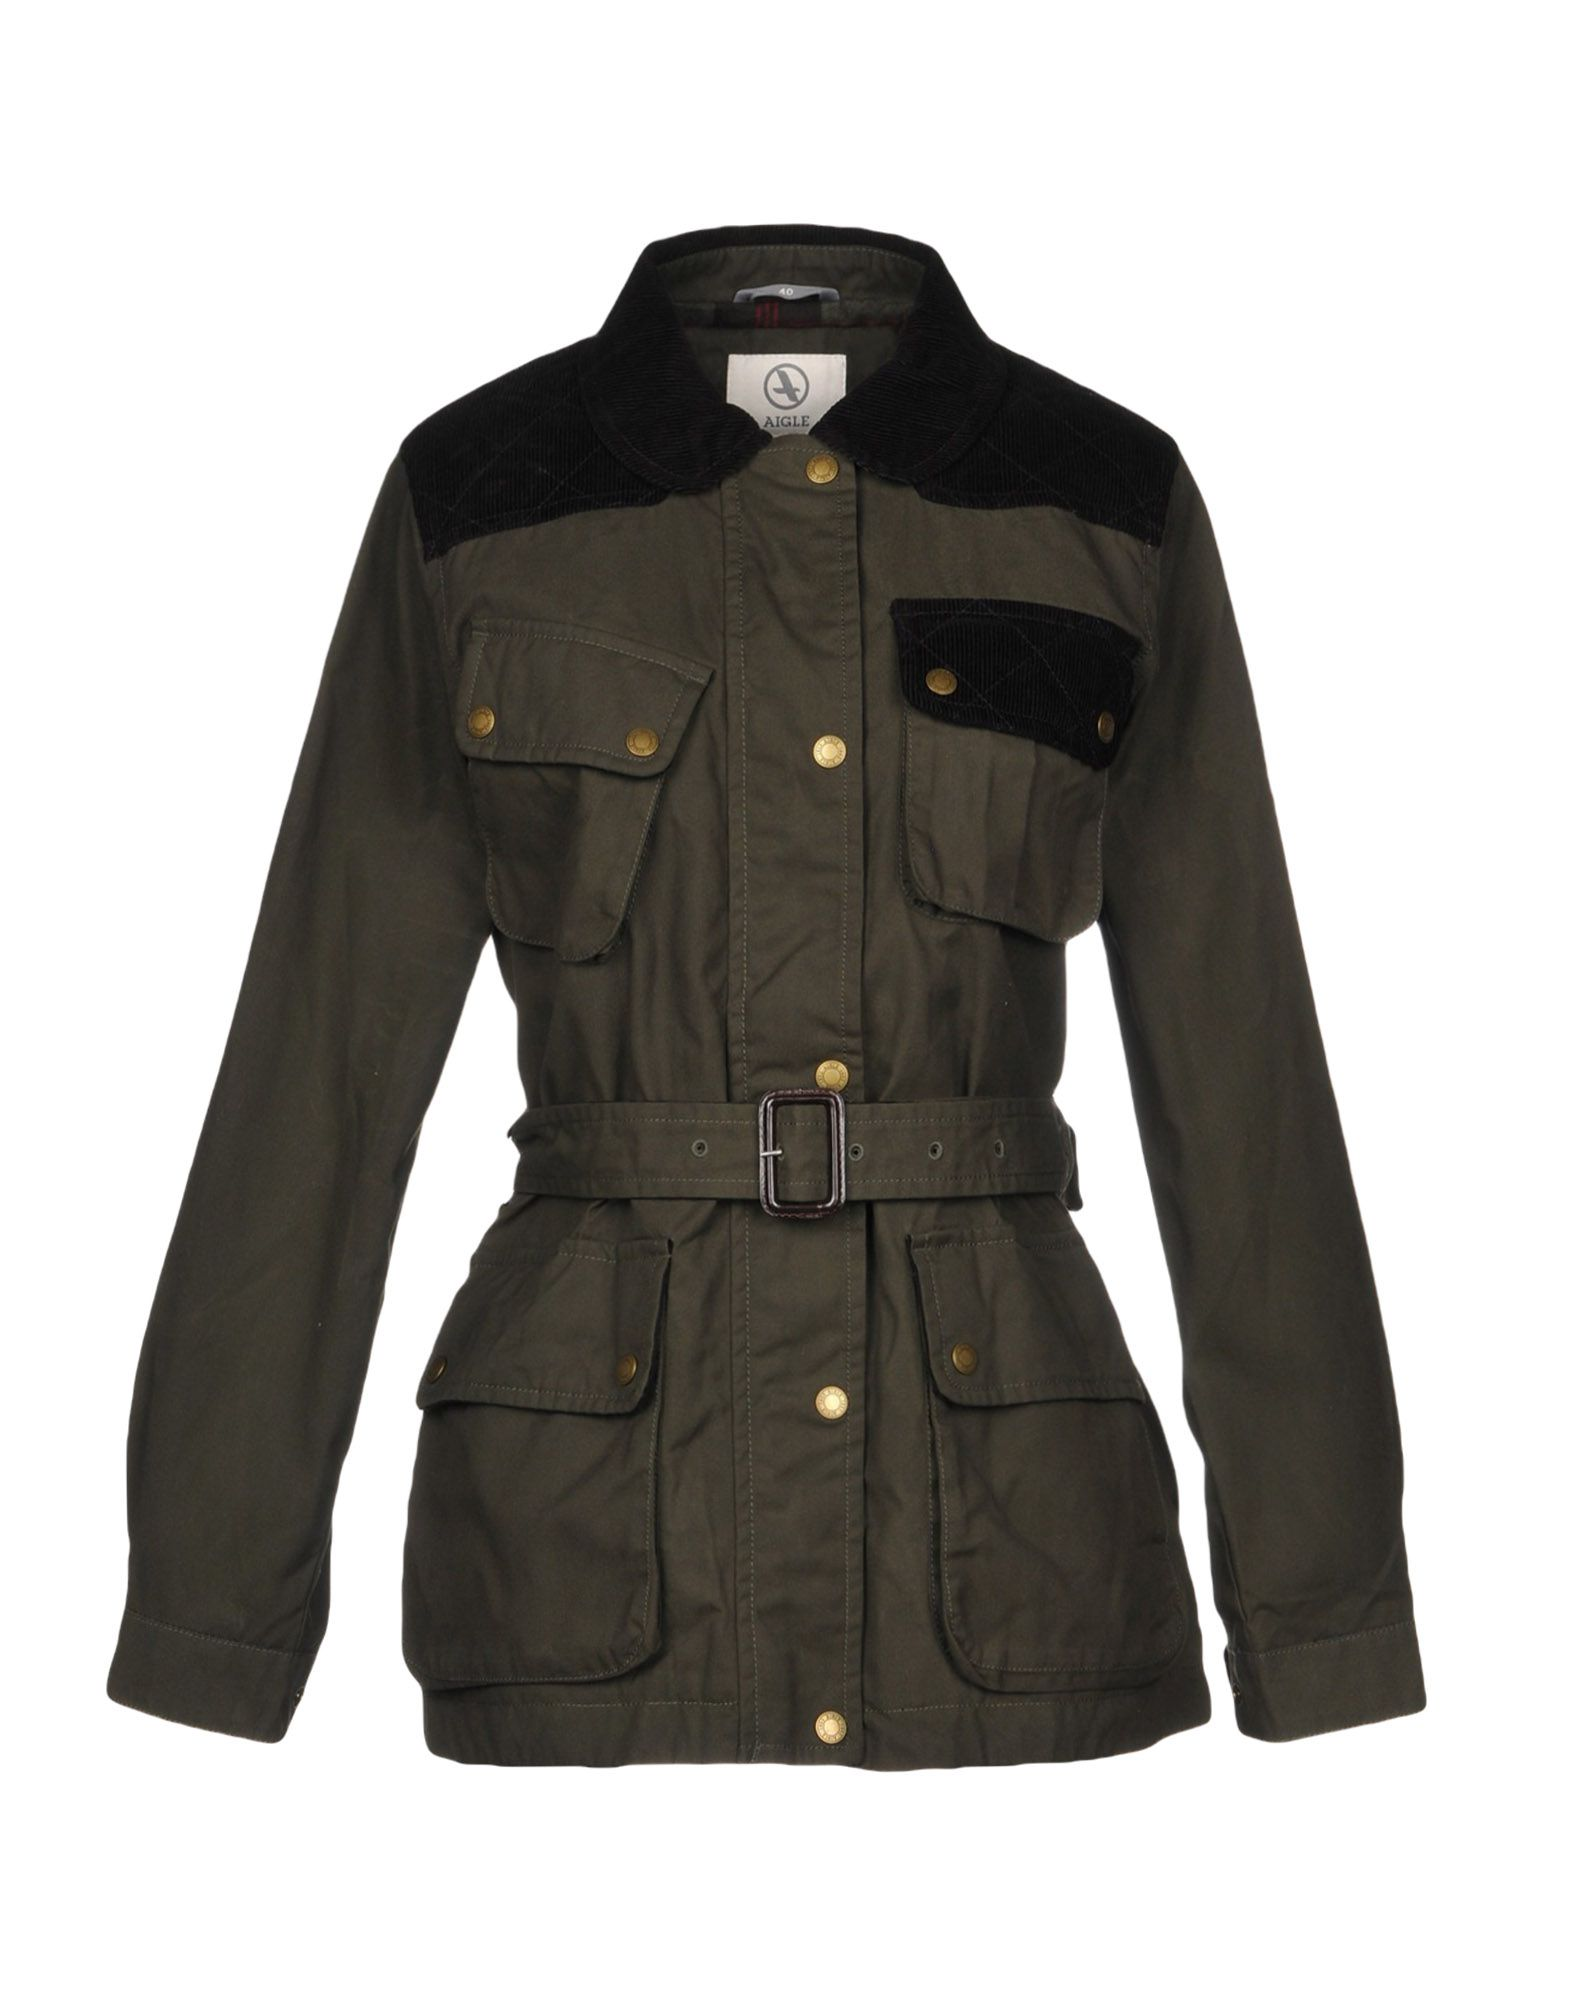 AIGLE Jackets in Military Green